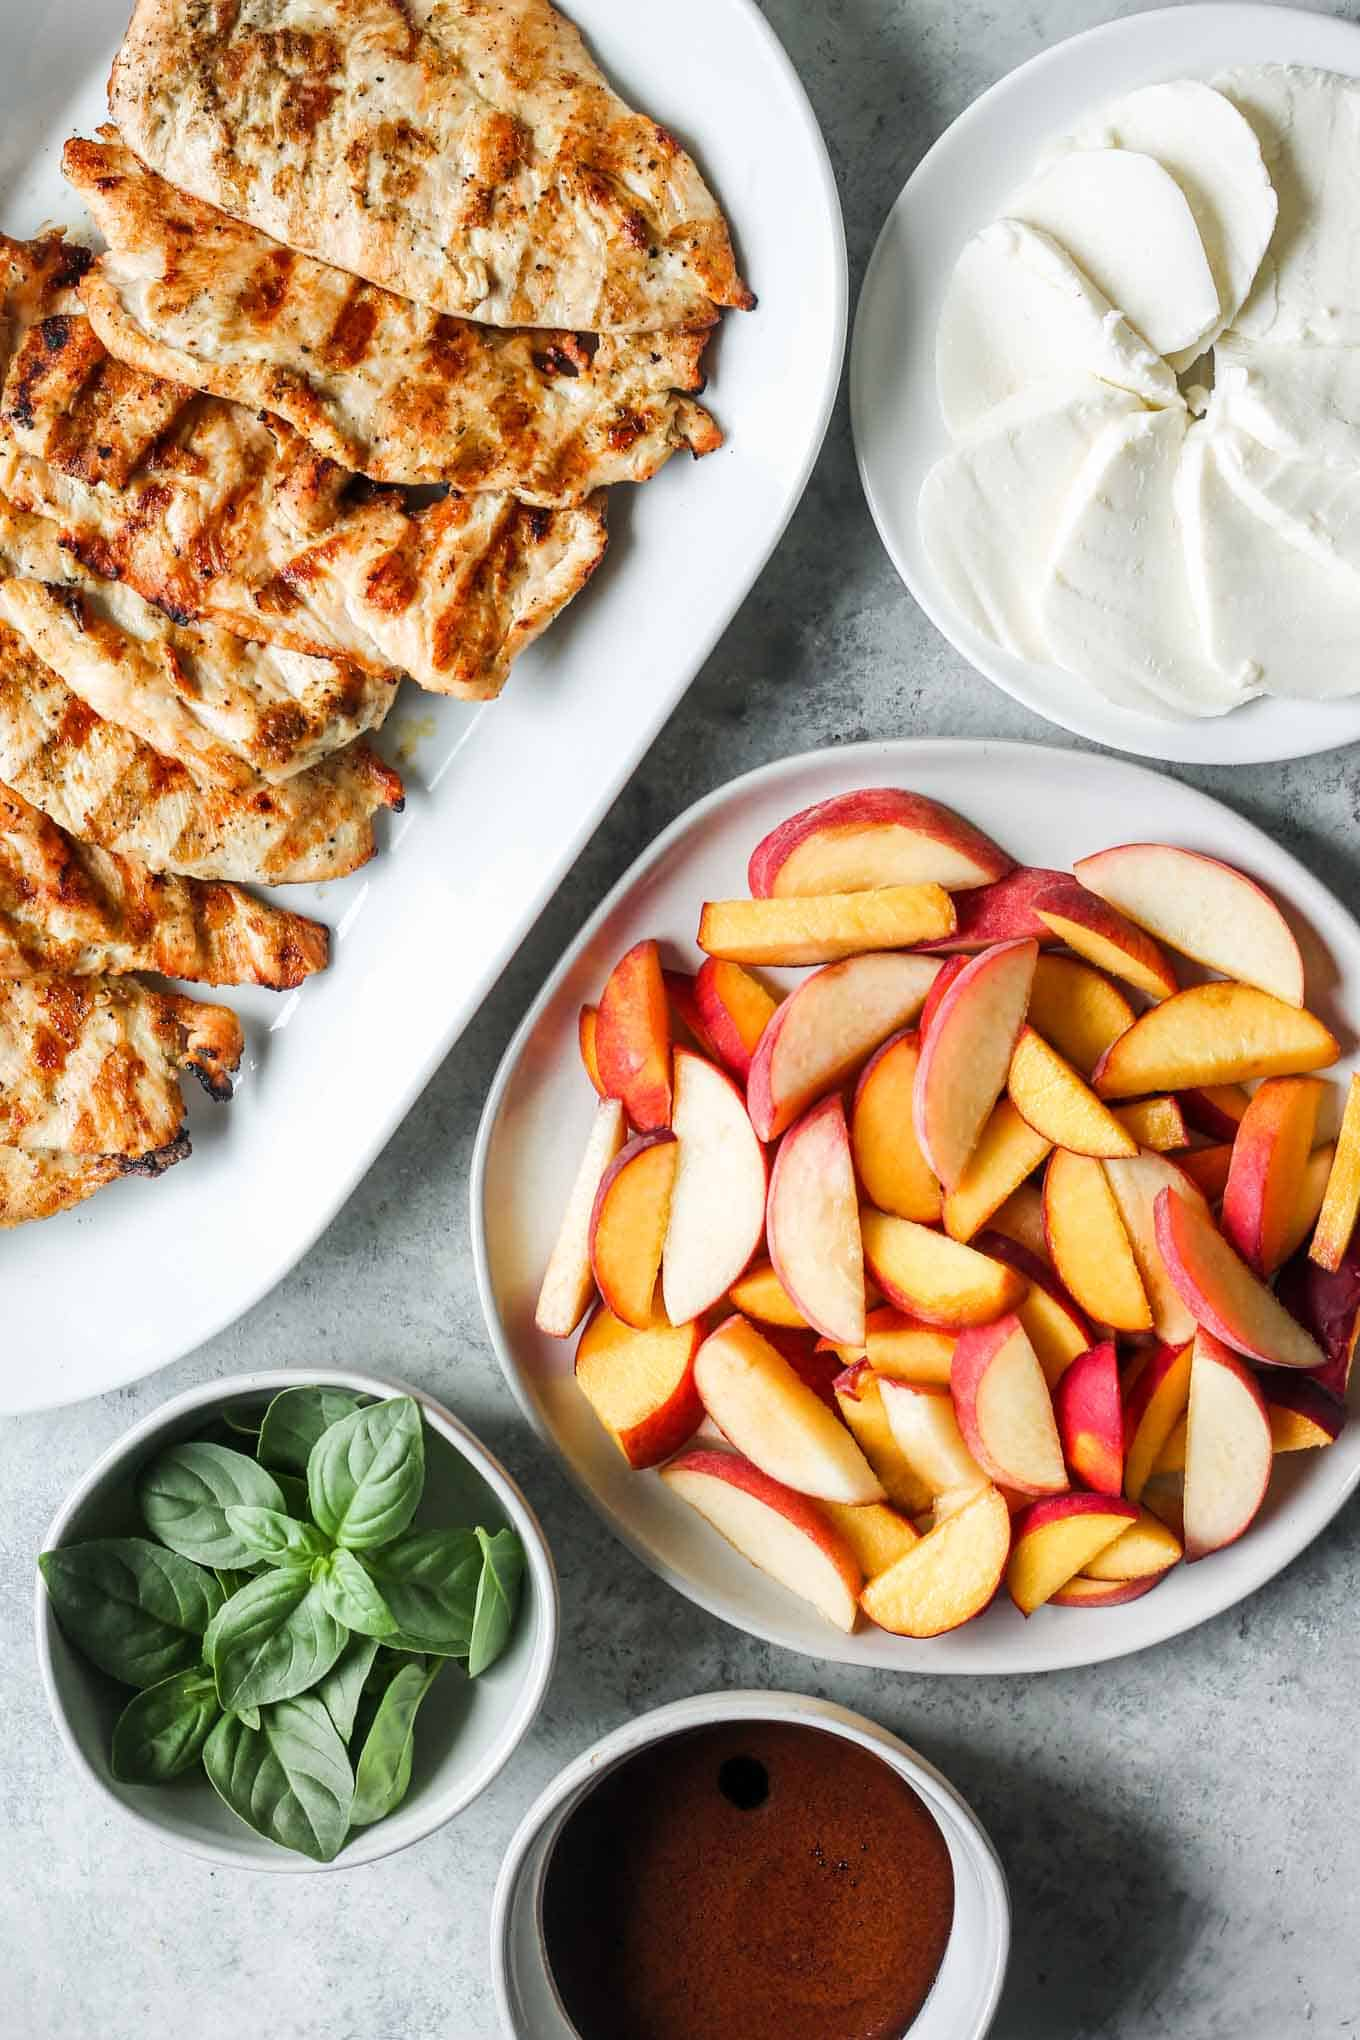 The peach slices, mozzarella slices, grilled chicken, basil, and balsamic glaze portioned out and ready to be assembled.